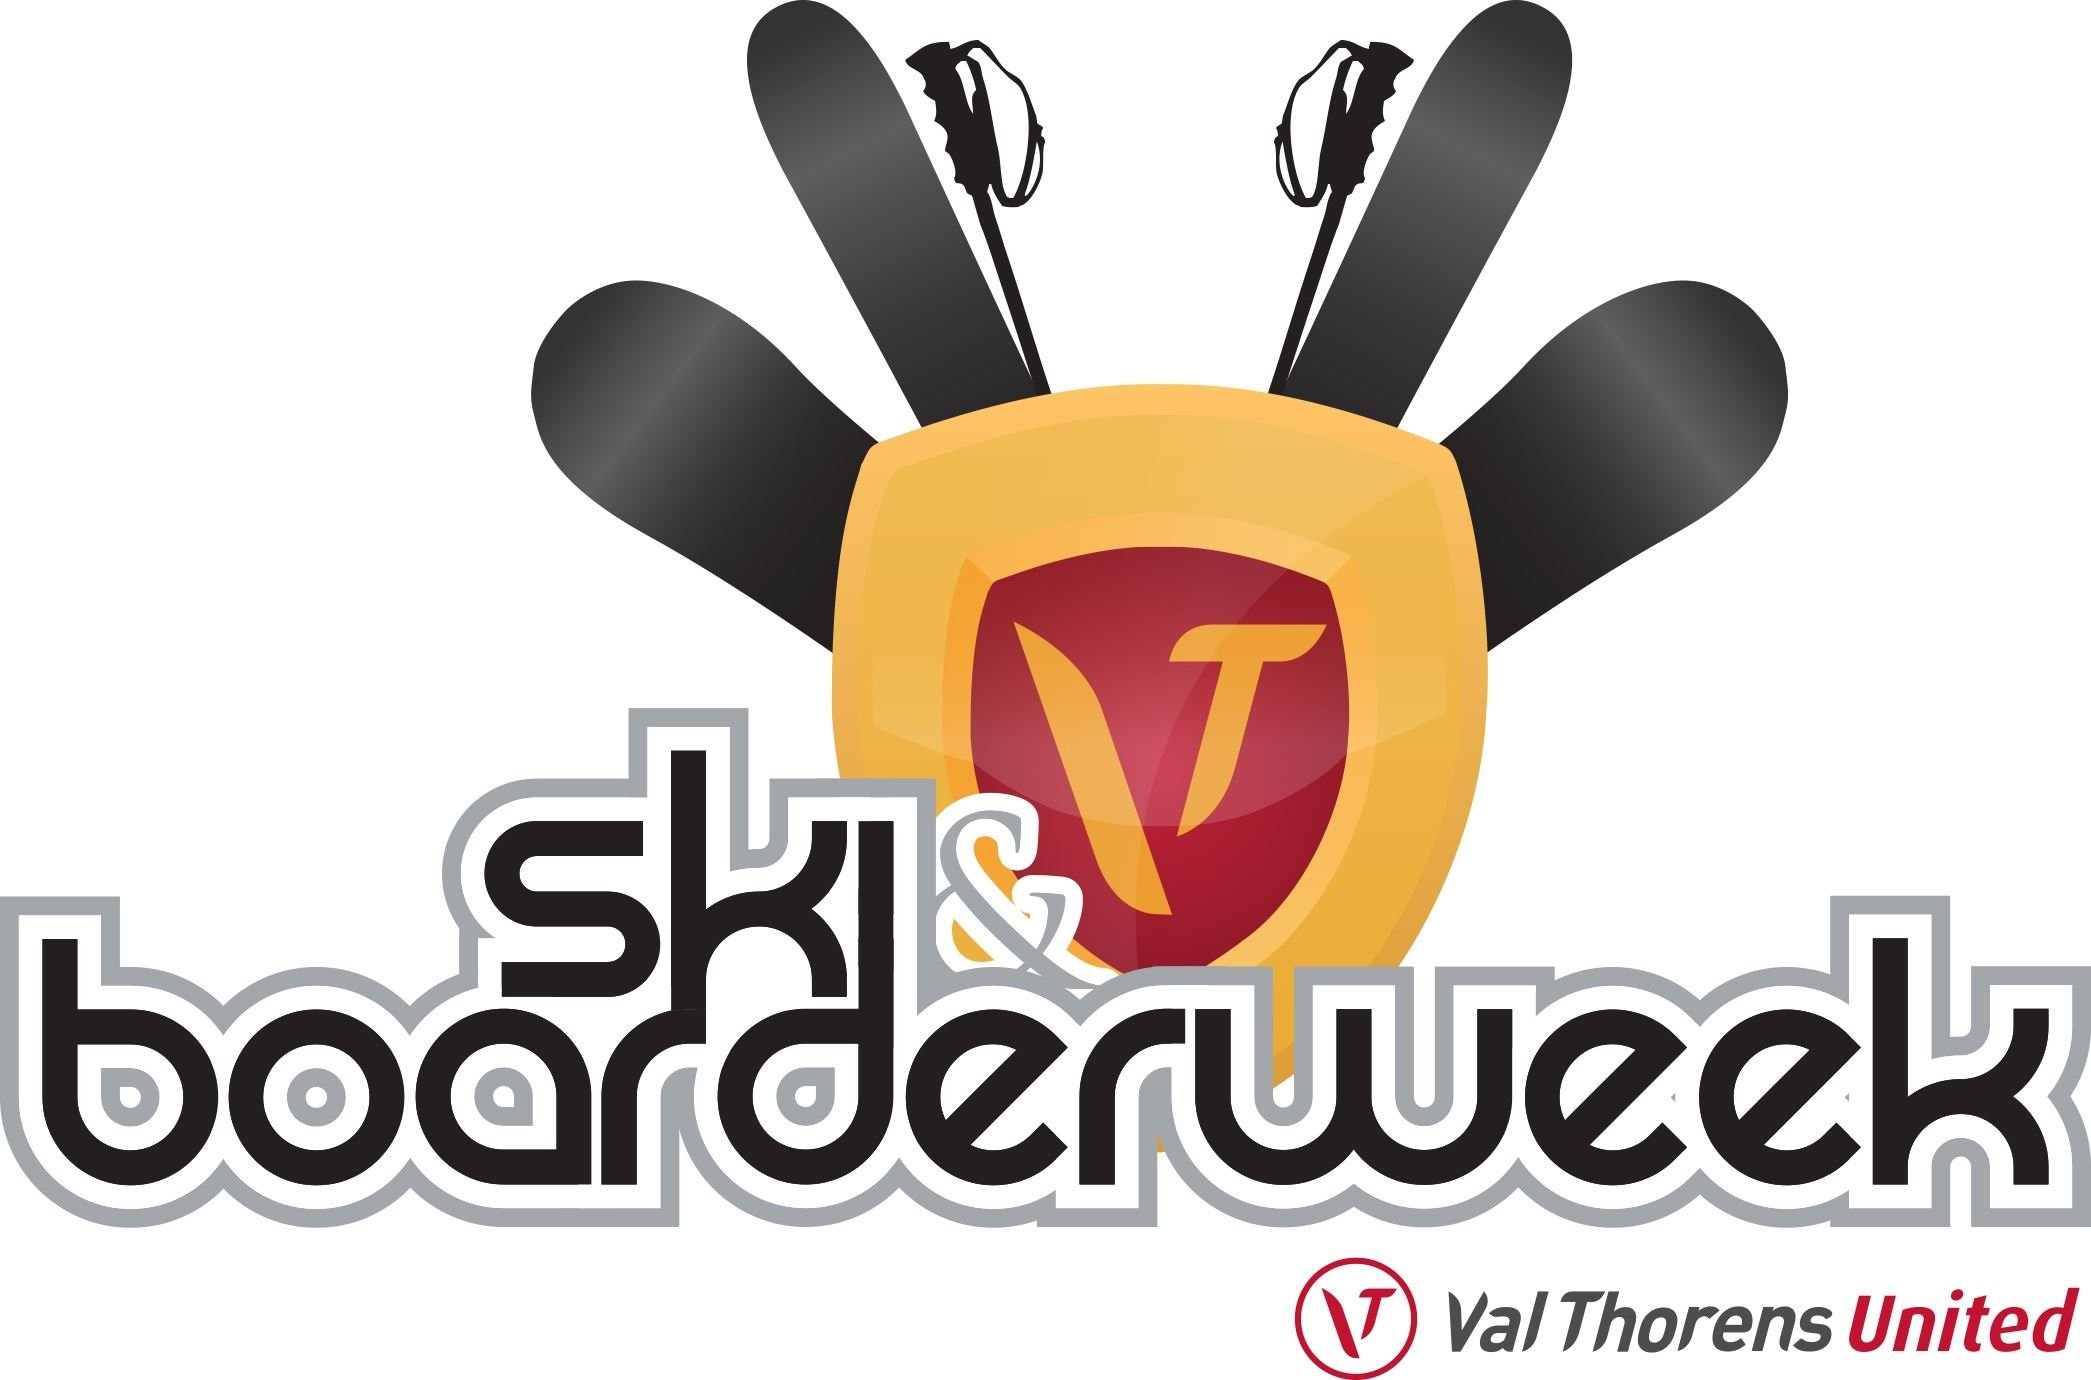 21st BOARDERWEEK - THE RIDERS' MEETING - FROM 288€ / PERS*